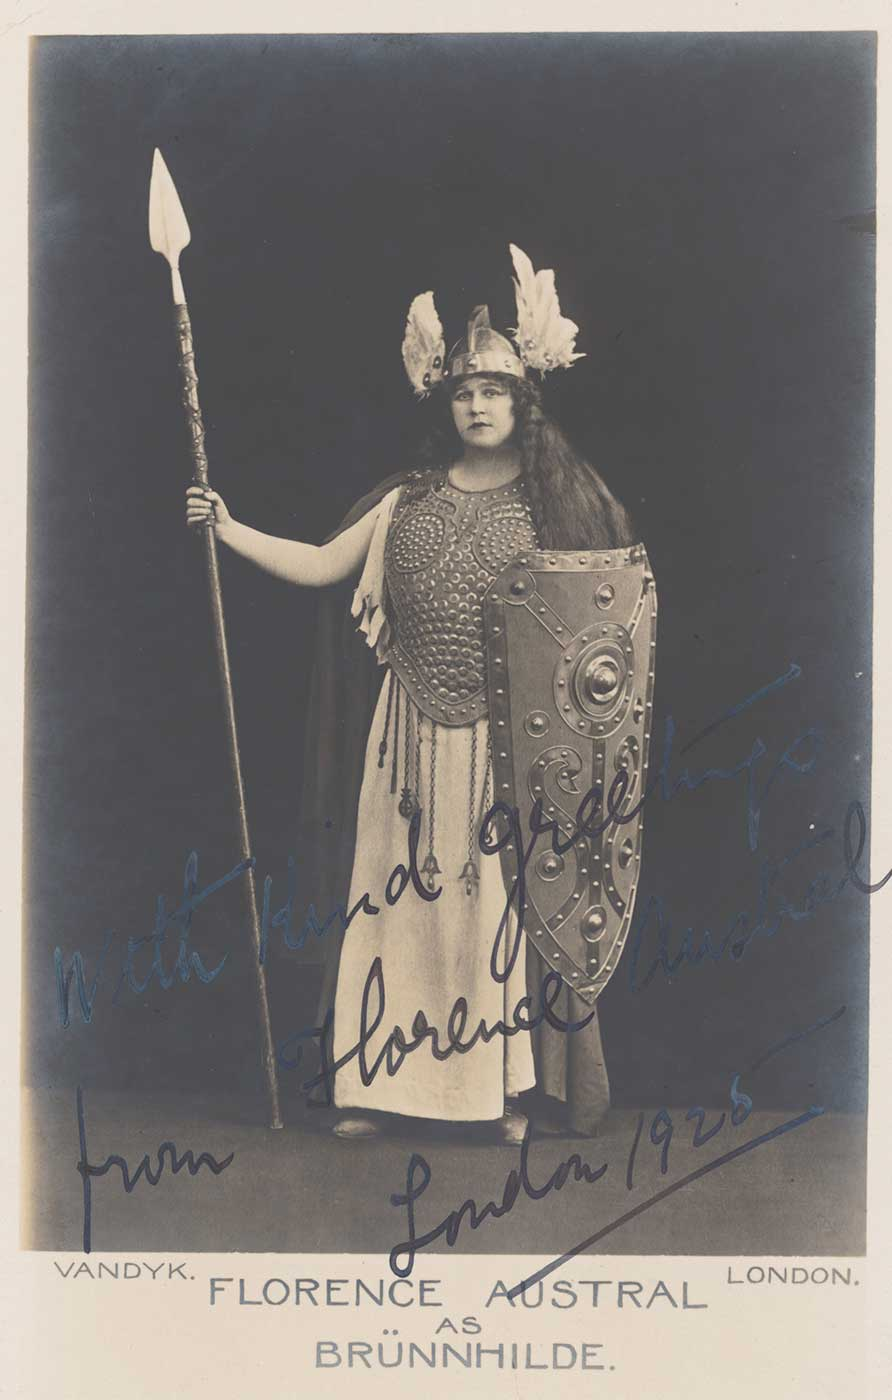 Studio portrait of Florence Austral wearing a two-pronged helmet and carrying a spear and shield, in costume as Brunnhilde.